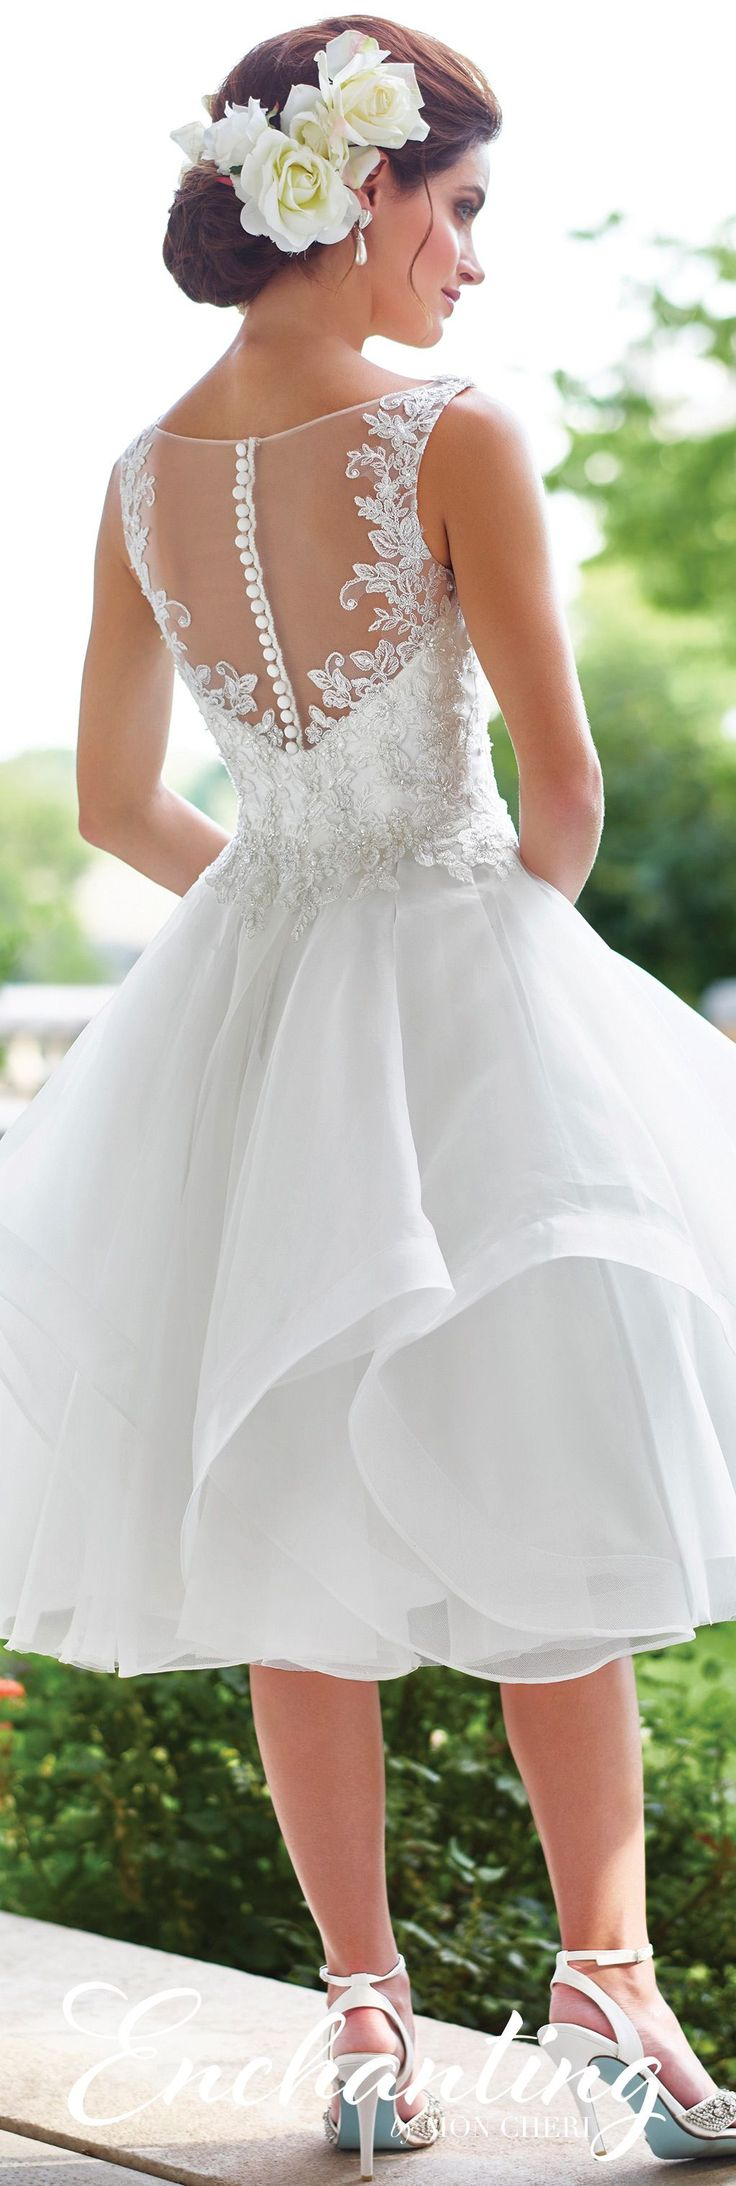 236 best Short Wedding Dresses 3 images on Pinterest | Short wedding ...